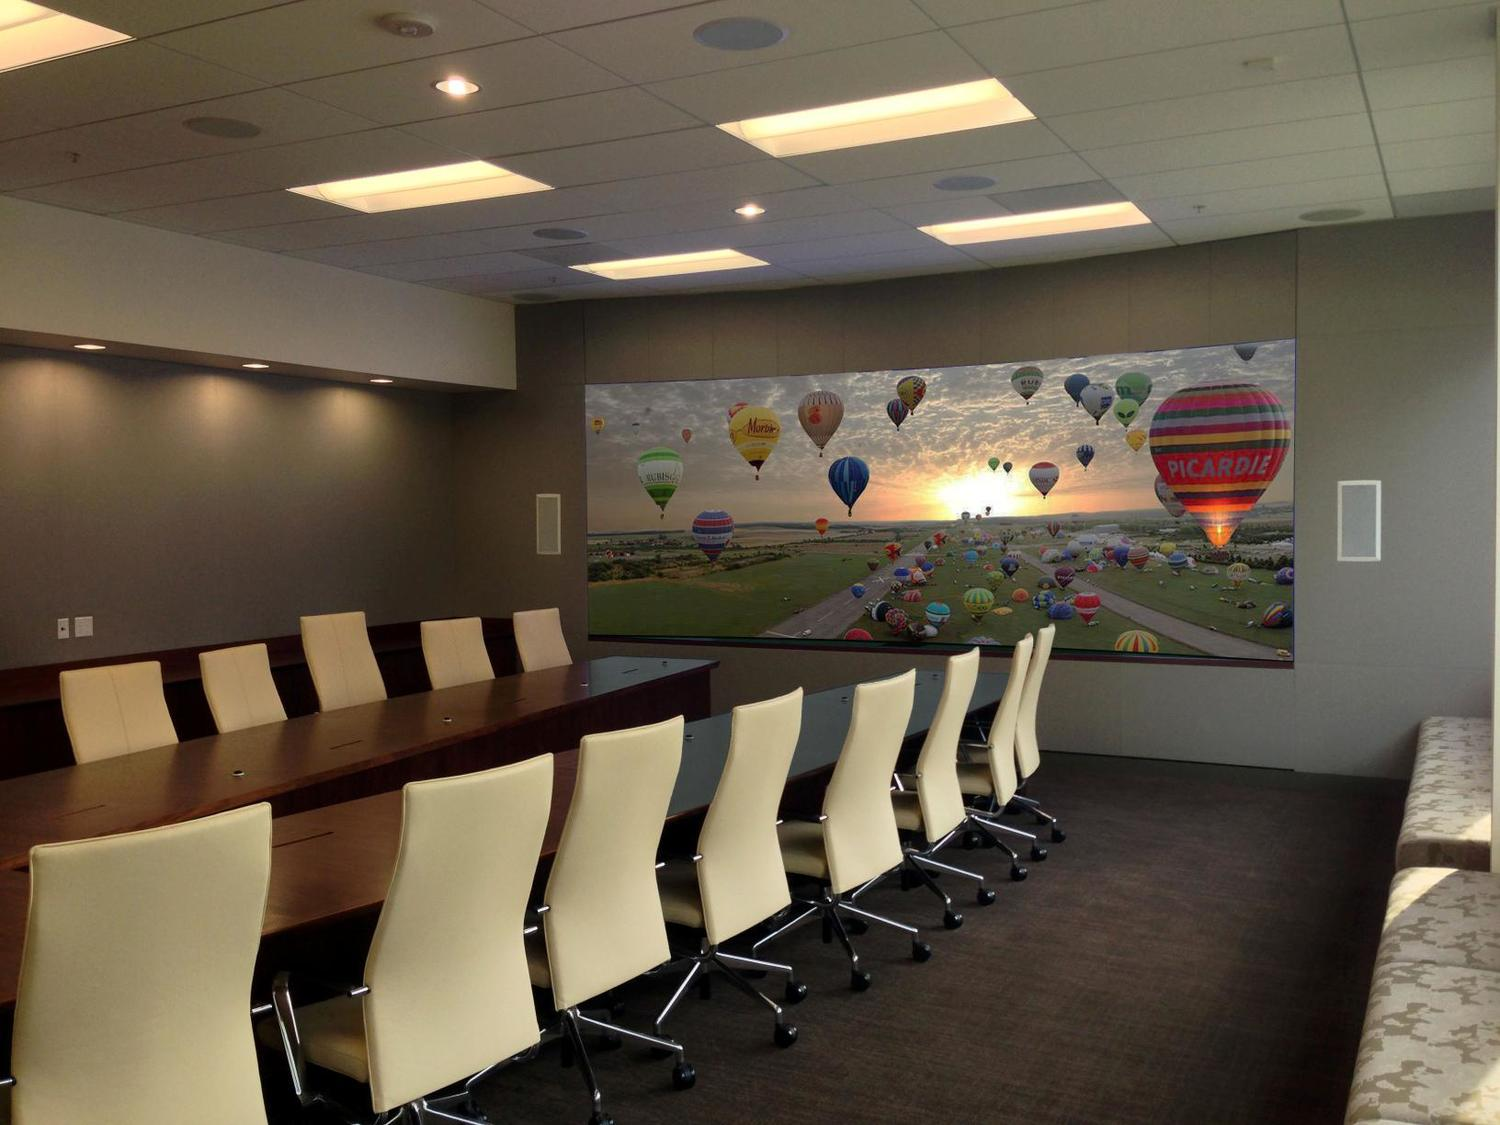 Infoblox Selects Prysm for its Multi-use Video Wall Capabilities